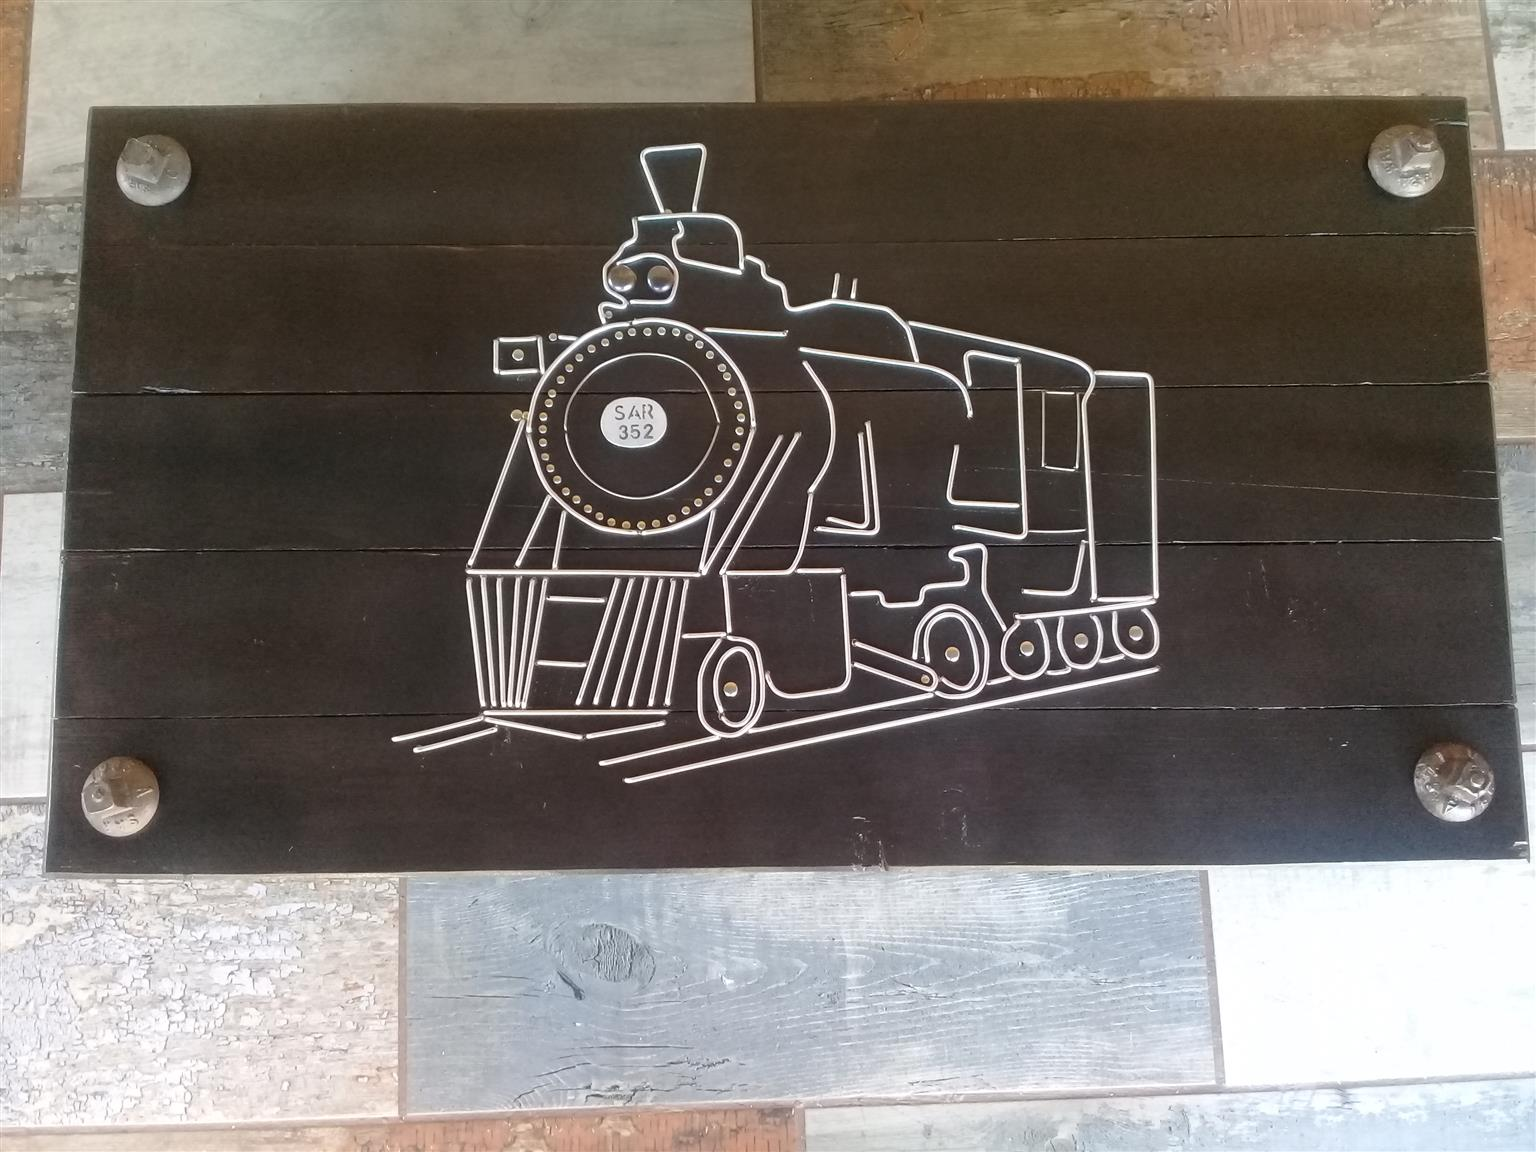 Coffee table solid wood decorated with railway sleeper bolts and steam locomotive table top with alliminium